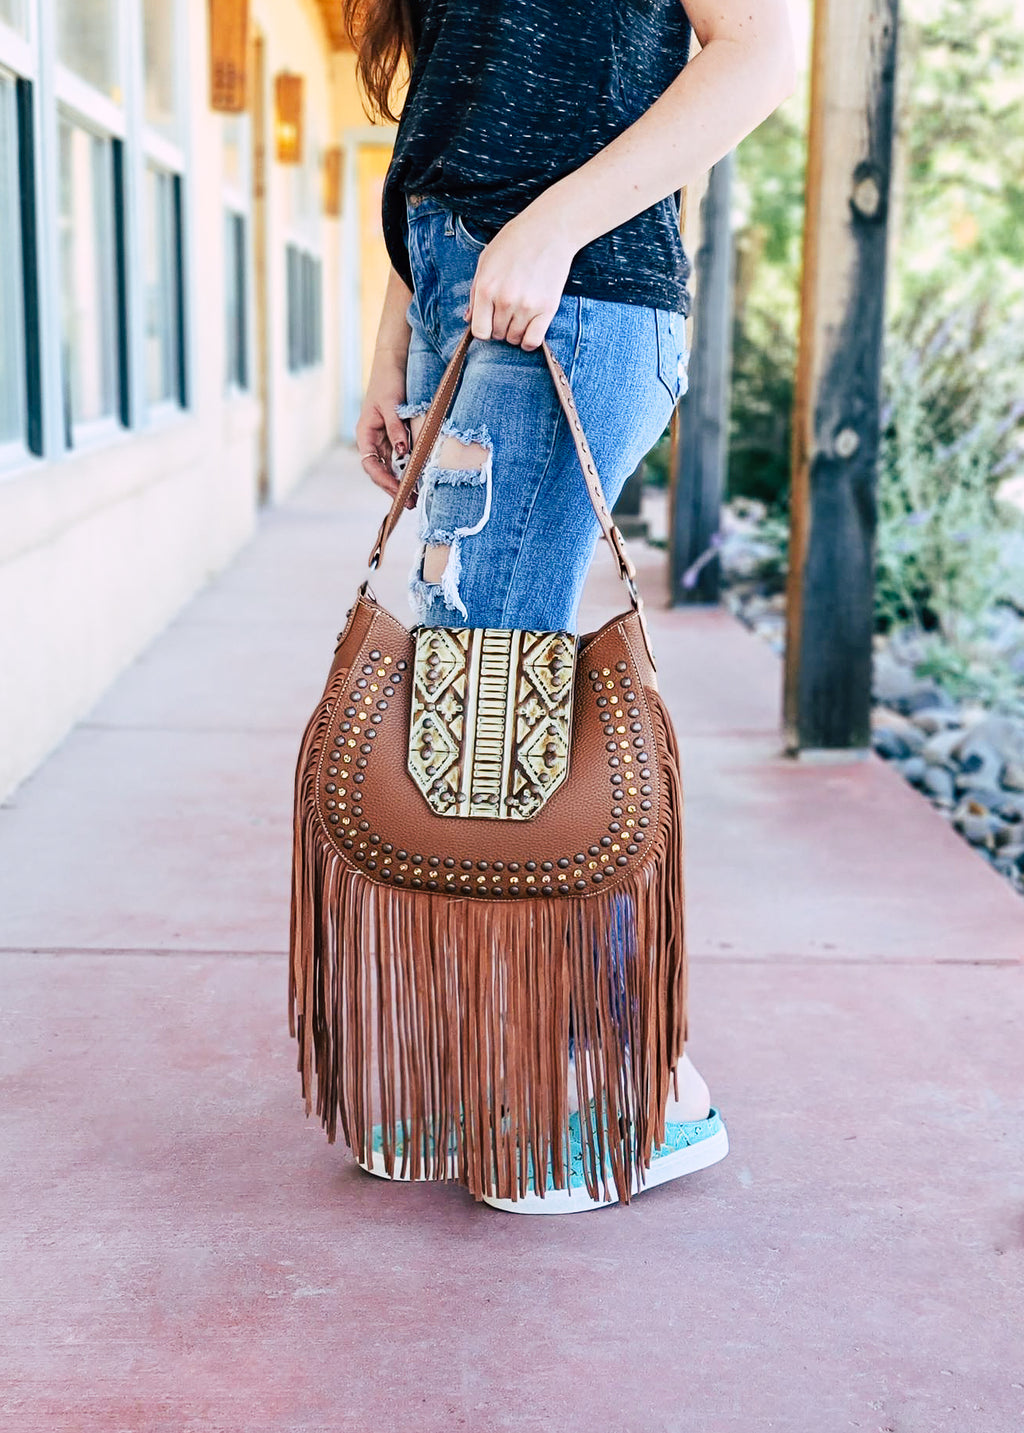 Brown Medium Handbag with Tan Rustic Aztec Design and Brown Rhinestones, with Long Strands of Fringe and 1 Shoulder Strap, Taken with Outside Lighting, on Brunette model